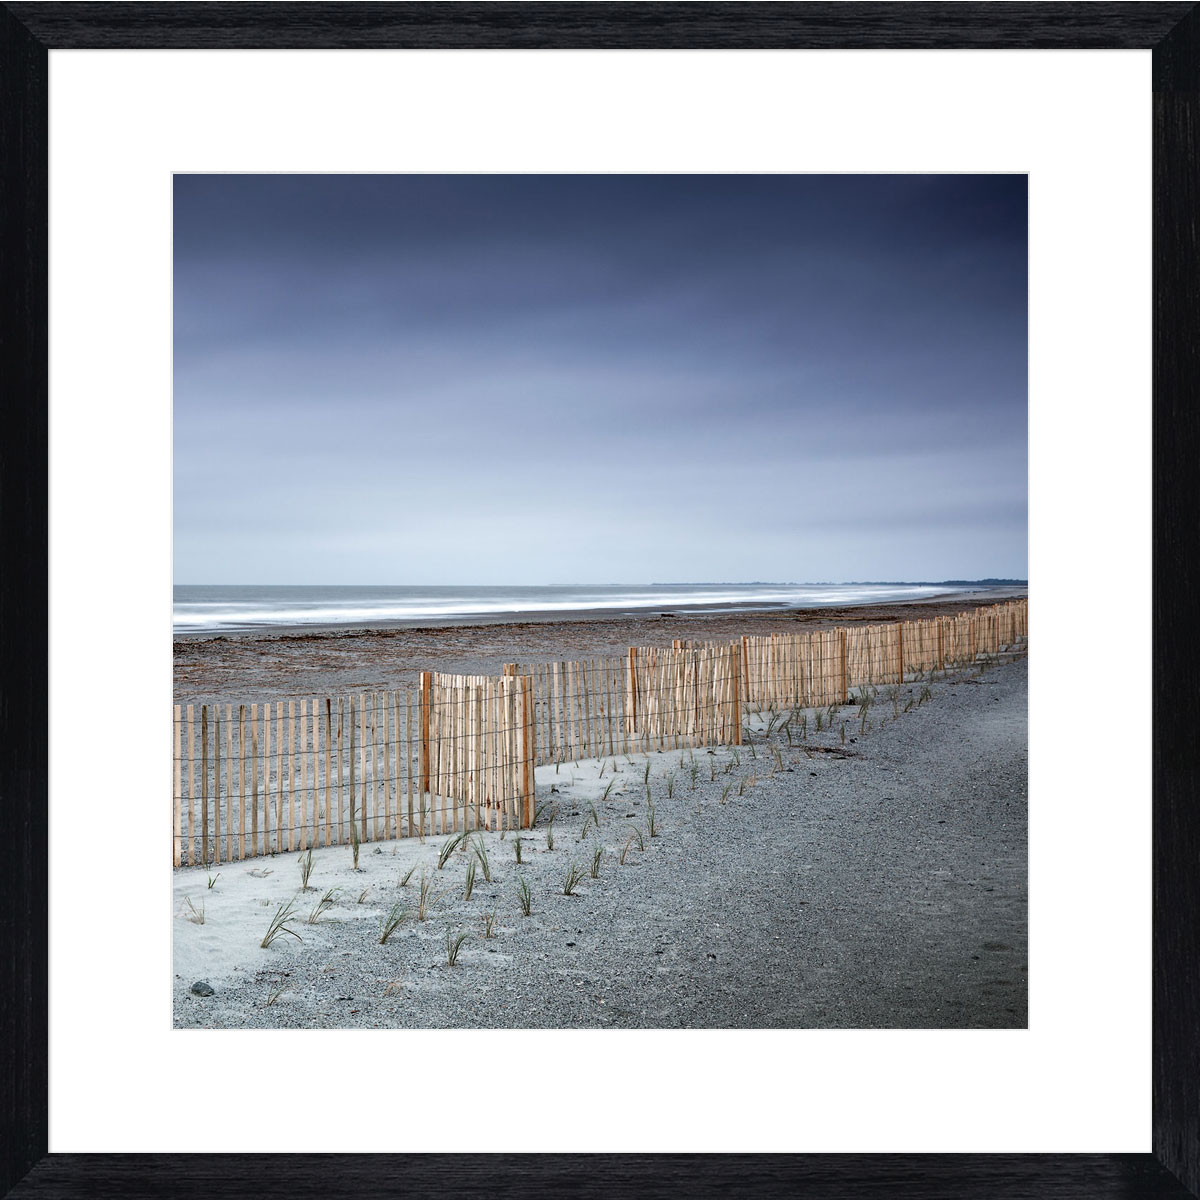 Folly-Beach-Photographic-Print-Black